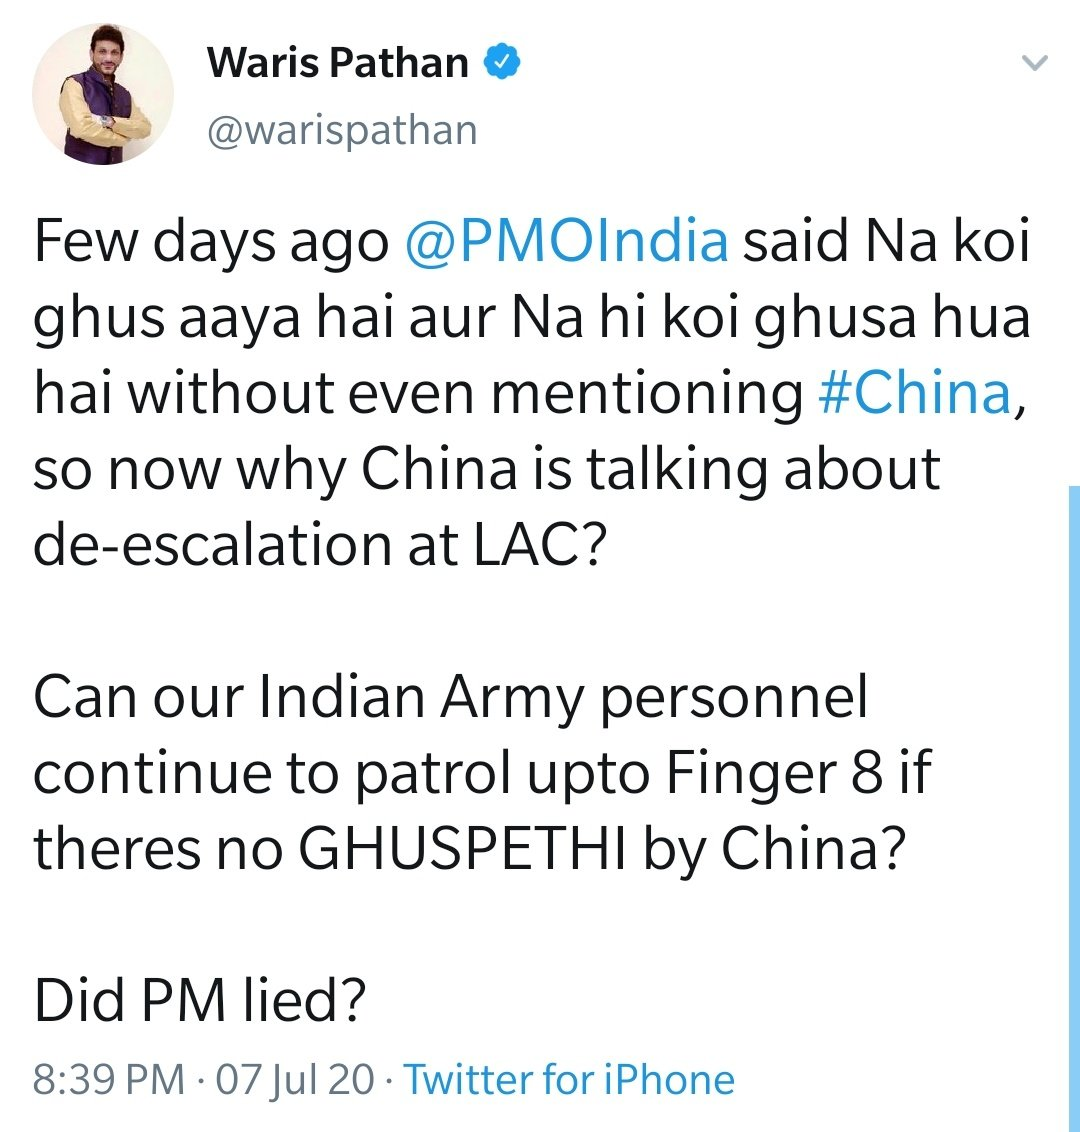 .@aimim_national Spokesperson Advocate @warispathan slams BJP Govt on #IndiaChinaBorder and asks PM Modi if China didnt made any incursion then why Chinese are taking about de-escalation. Pathan also asked can Army still patrol till finger 8 at LAC @ANI @IndiaToday @TimesNow